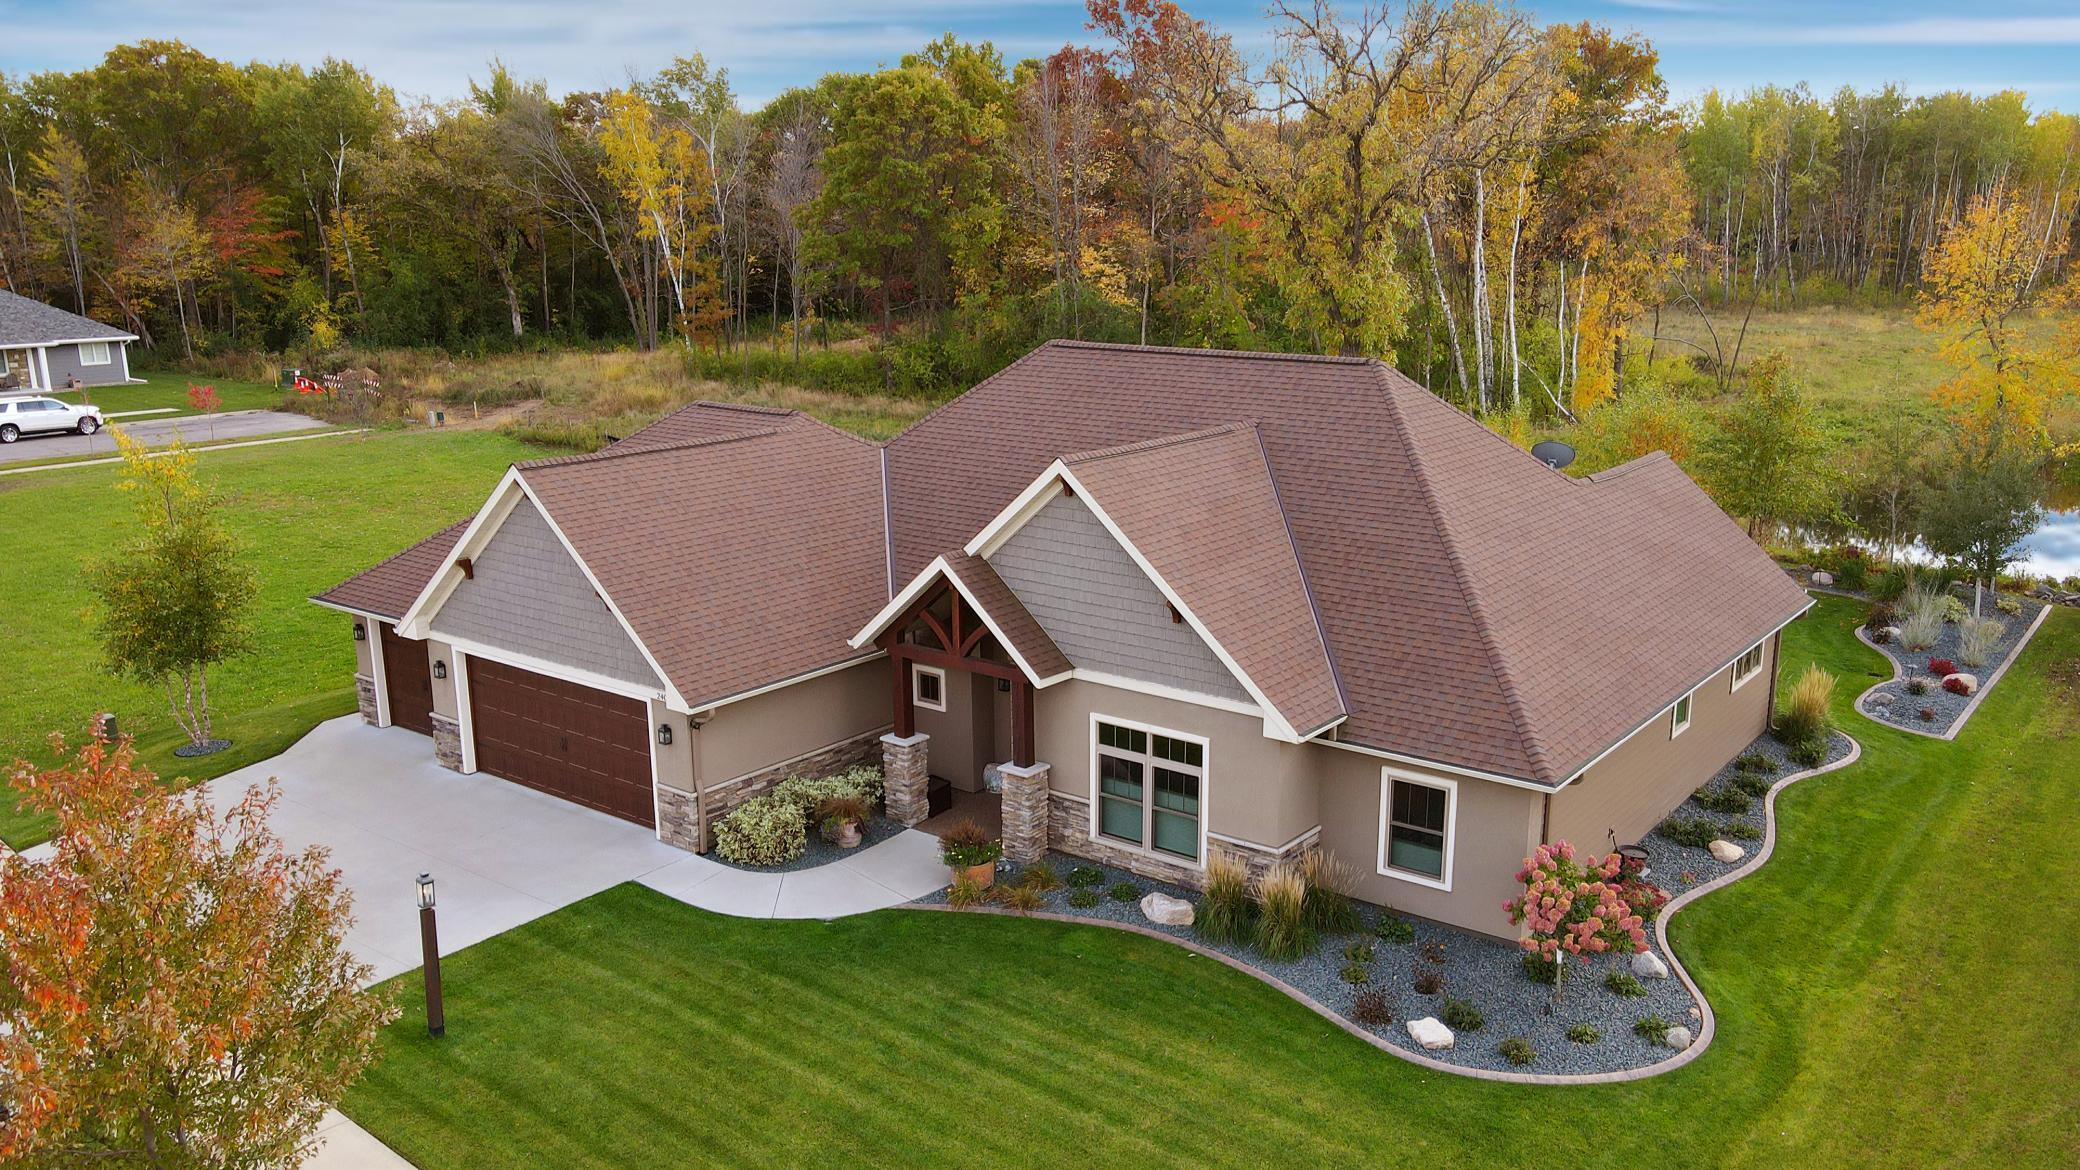 Stunning custom patio home in South St. Cloud's beautiful Quarry Woods.  Every room in this 3 bed 3 bath home is immersed in luxurious details.  Home equipped with Control4 Whole Home automation system that allows you countless ways to make your life easier.  This home is a masterpiece of design and craftsmanship featuring polished concrete floors w/in floor heat.  Knotty alder cabinets & woodwork throughout. Accented ceilings, spacious kitchen boasting 6 burner gas stove, large island, granite counter tops & huge walk in pantry.  The exquisite outdoor landscaping creates your own private oasis with two separate patio areas with retractable awnings, built in gas fire pit and meticulously manicured yard.  4 stall heated garage highlights include textured flooring, tons of cabinet storage including attic & overhead walk out screen door.  With all this and so much more to offer you must see in person!